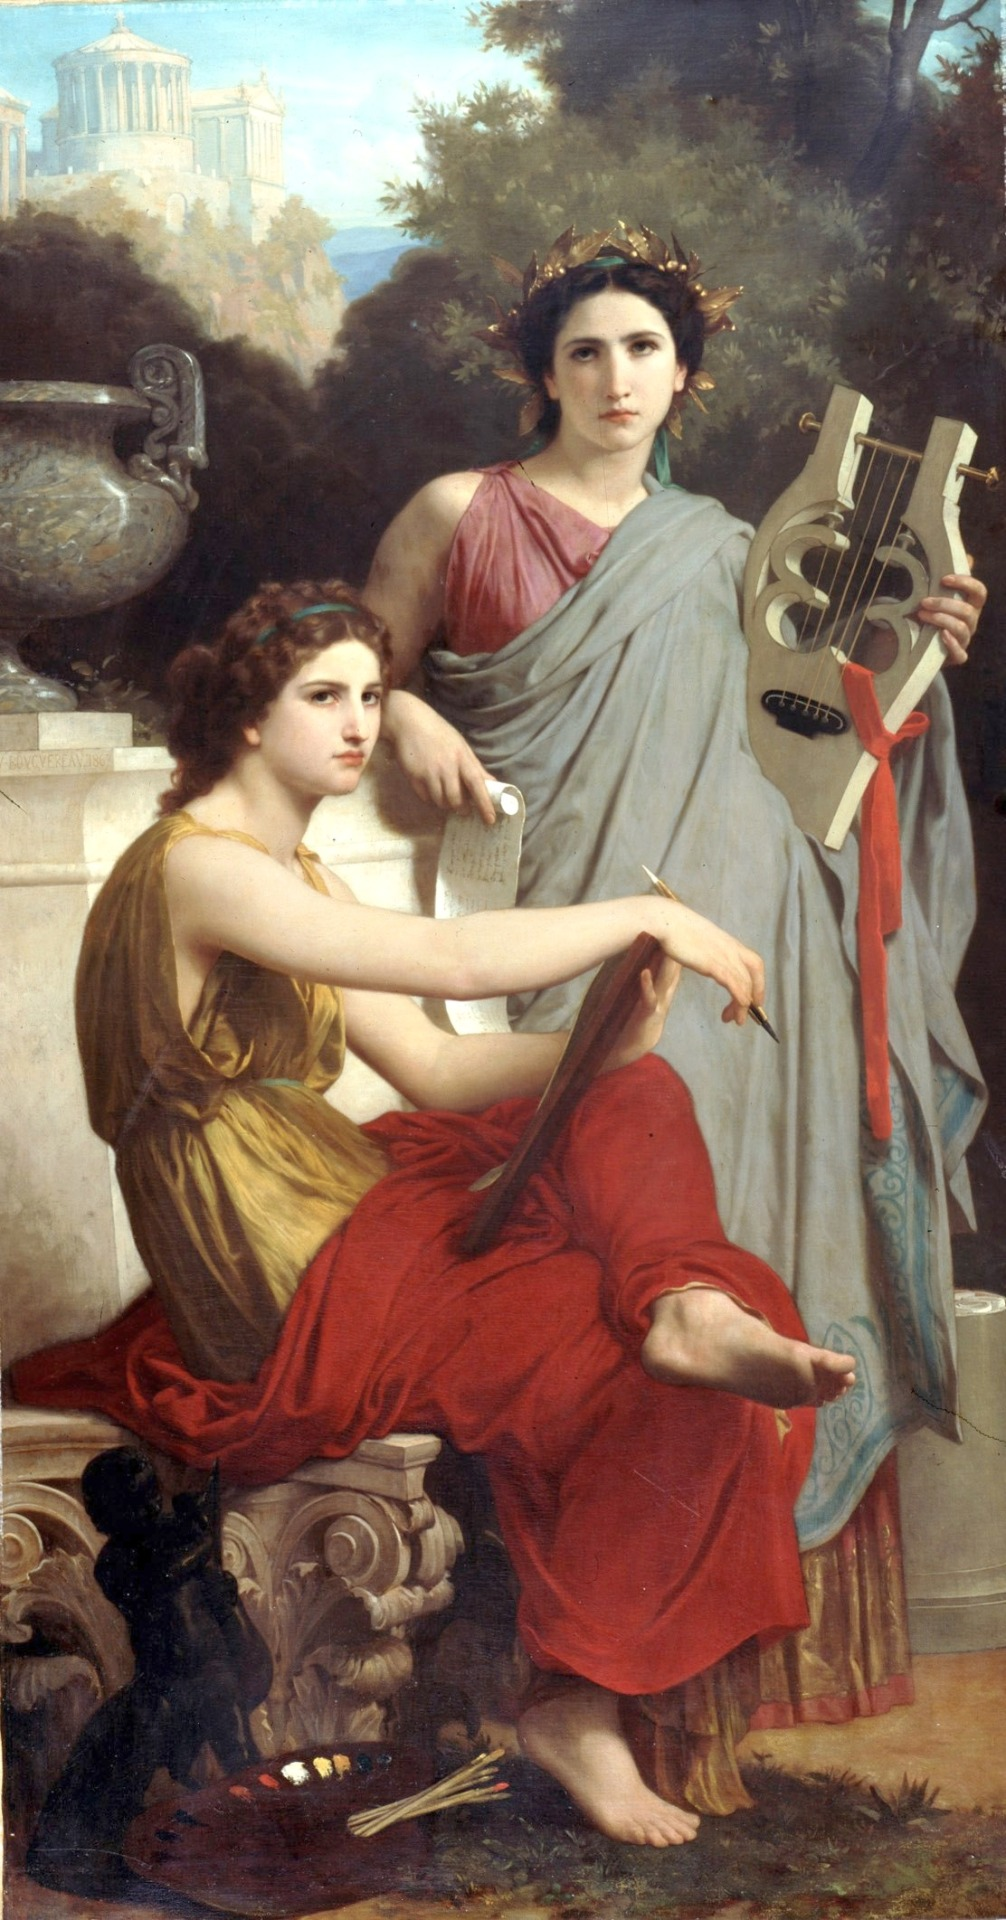 Art & Literature by William Adolphe Bouguereau (1825-1905) oil on canvas, c.1867